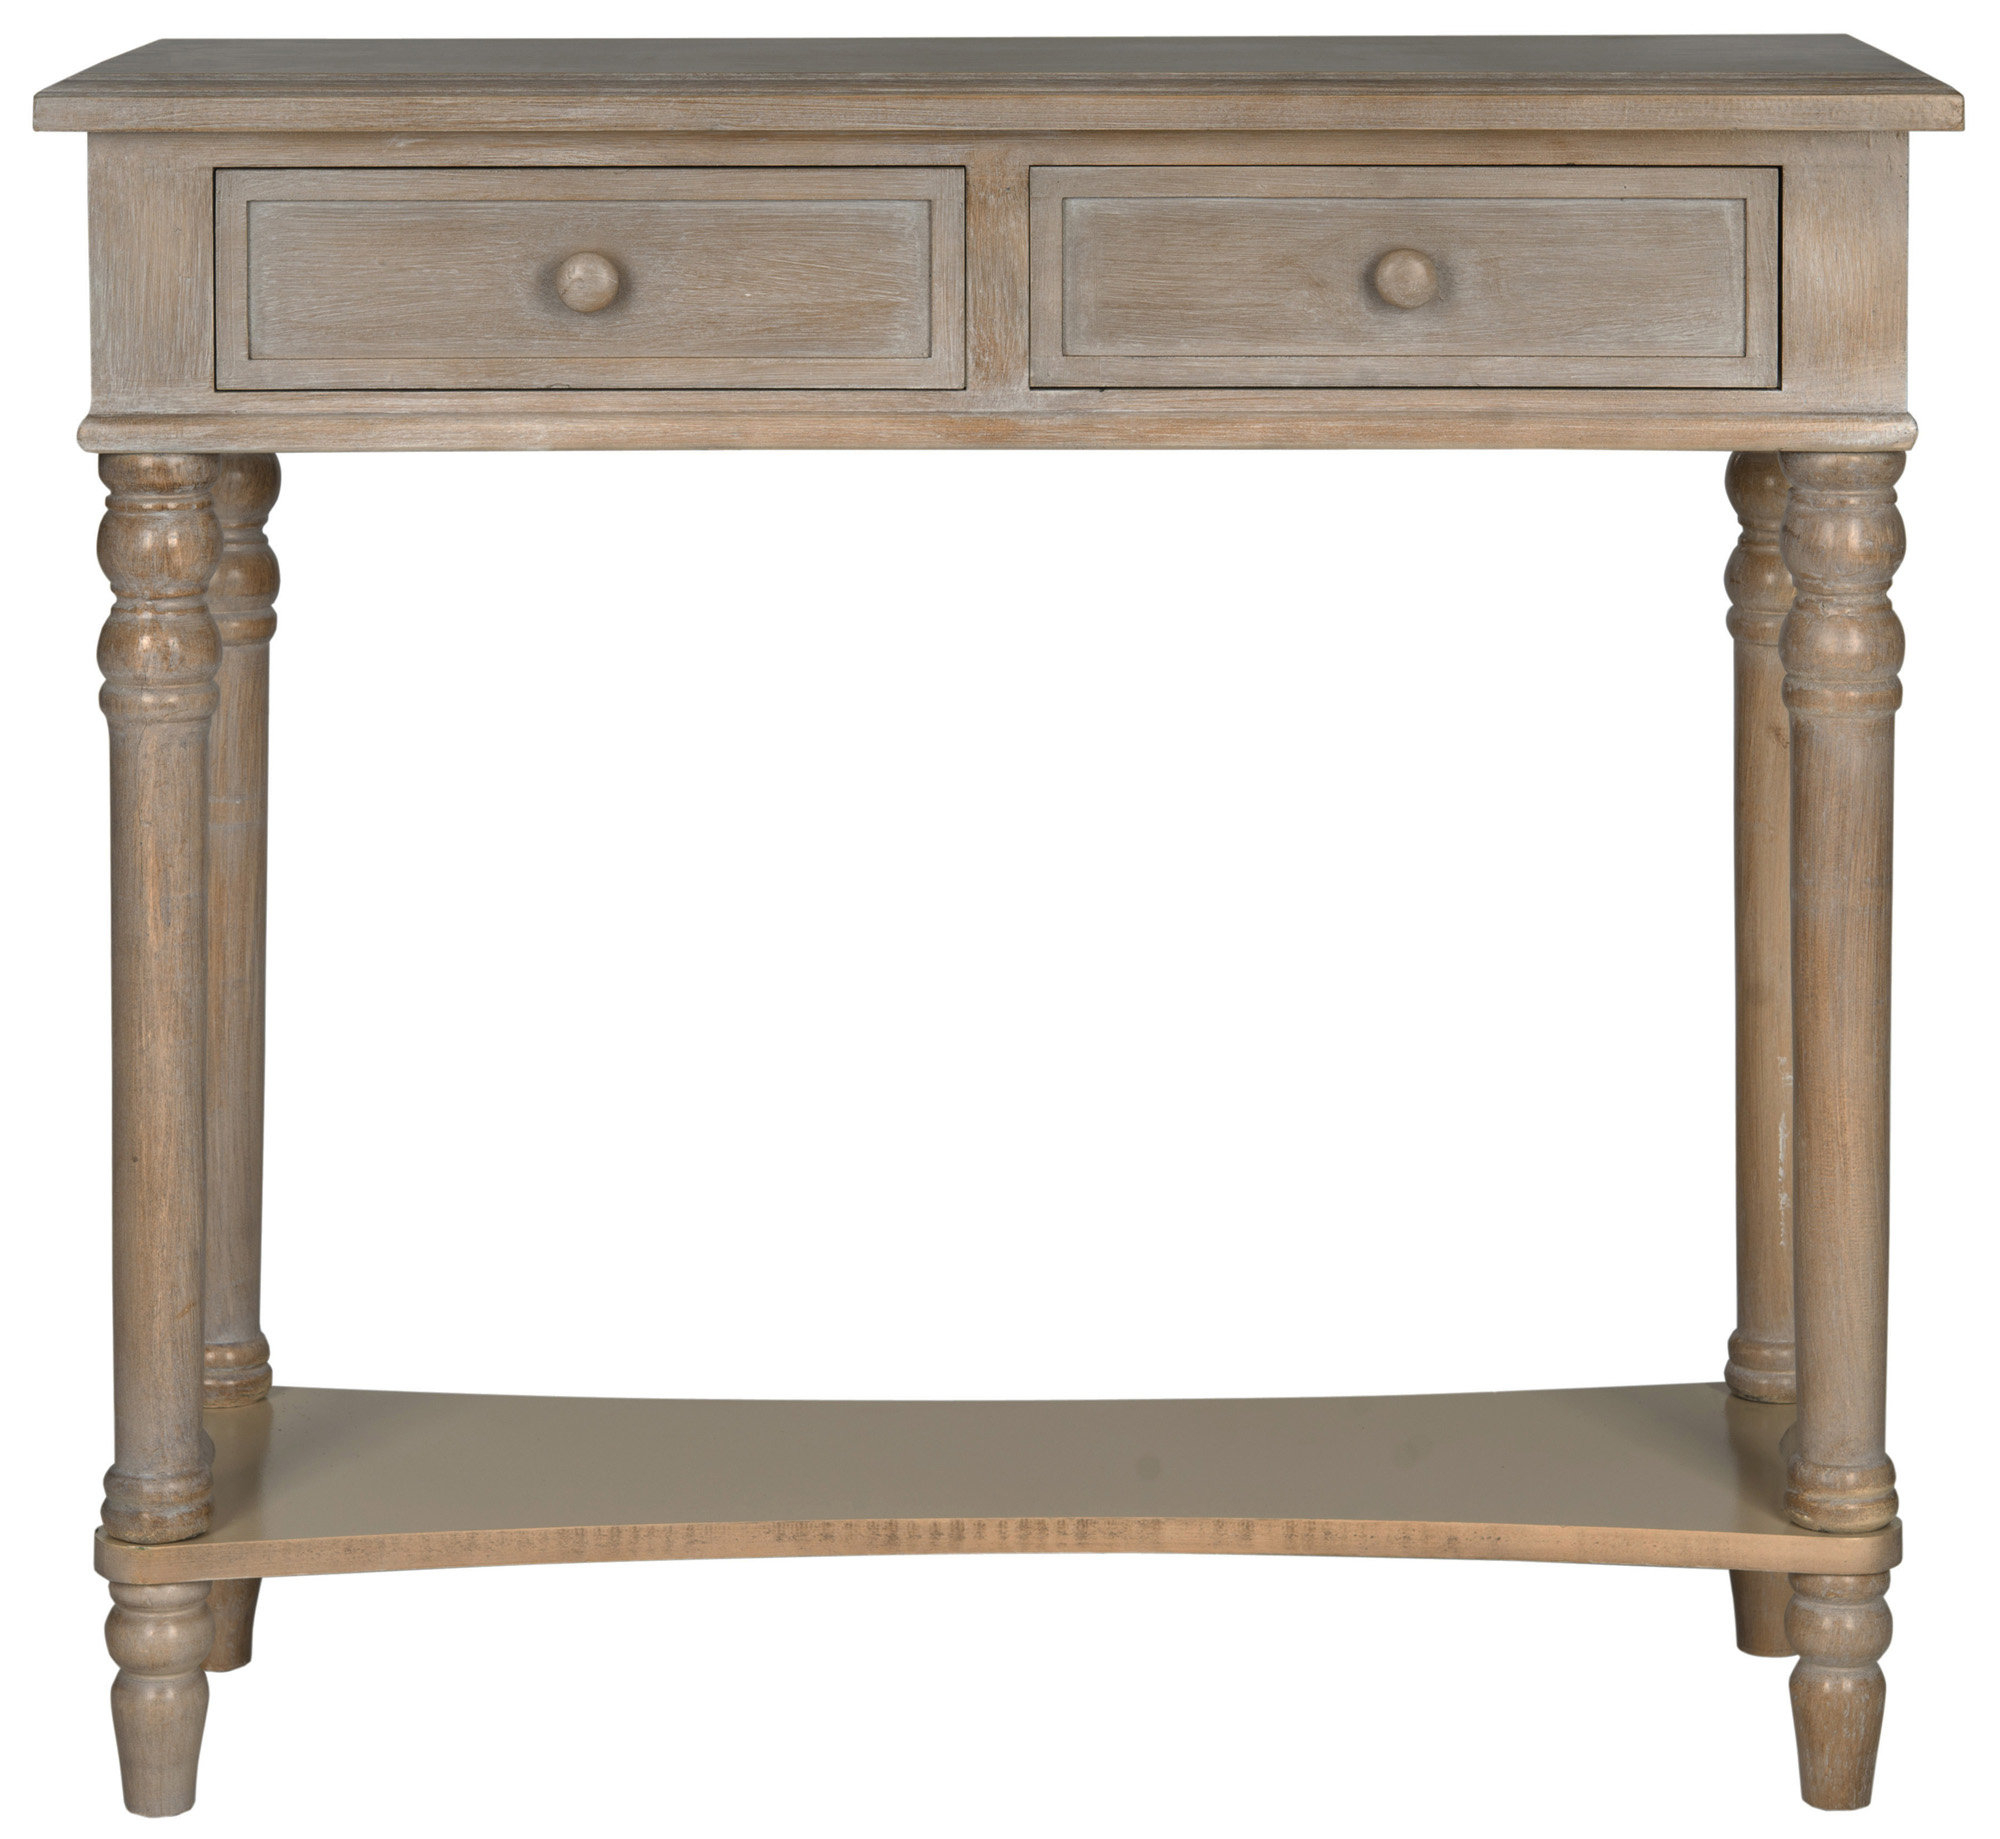 Kitchen Console Tables | Wayfair.co (View 11 of 20)